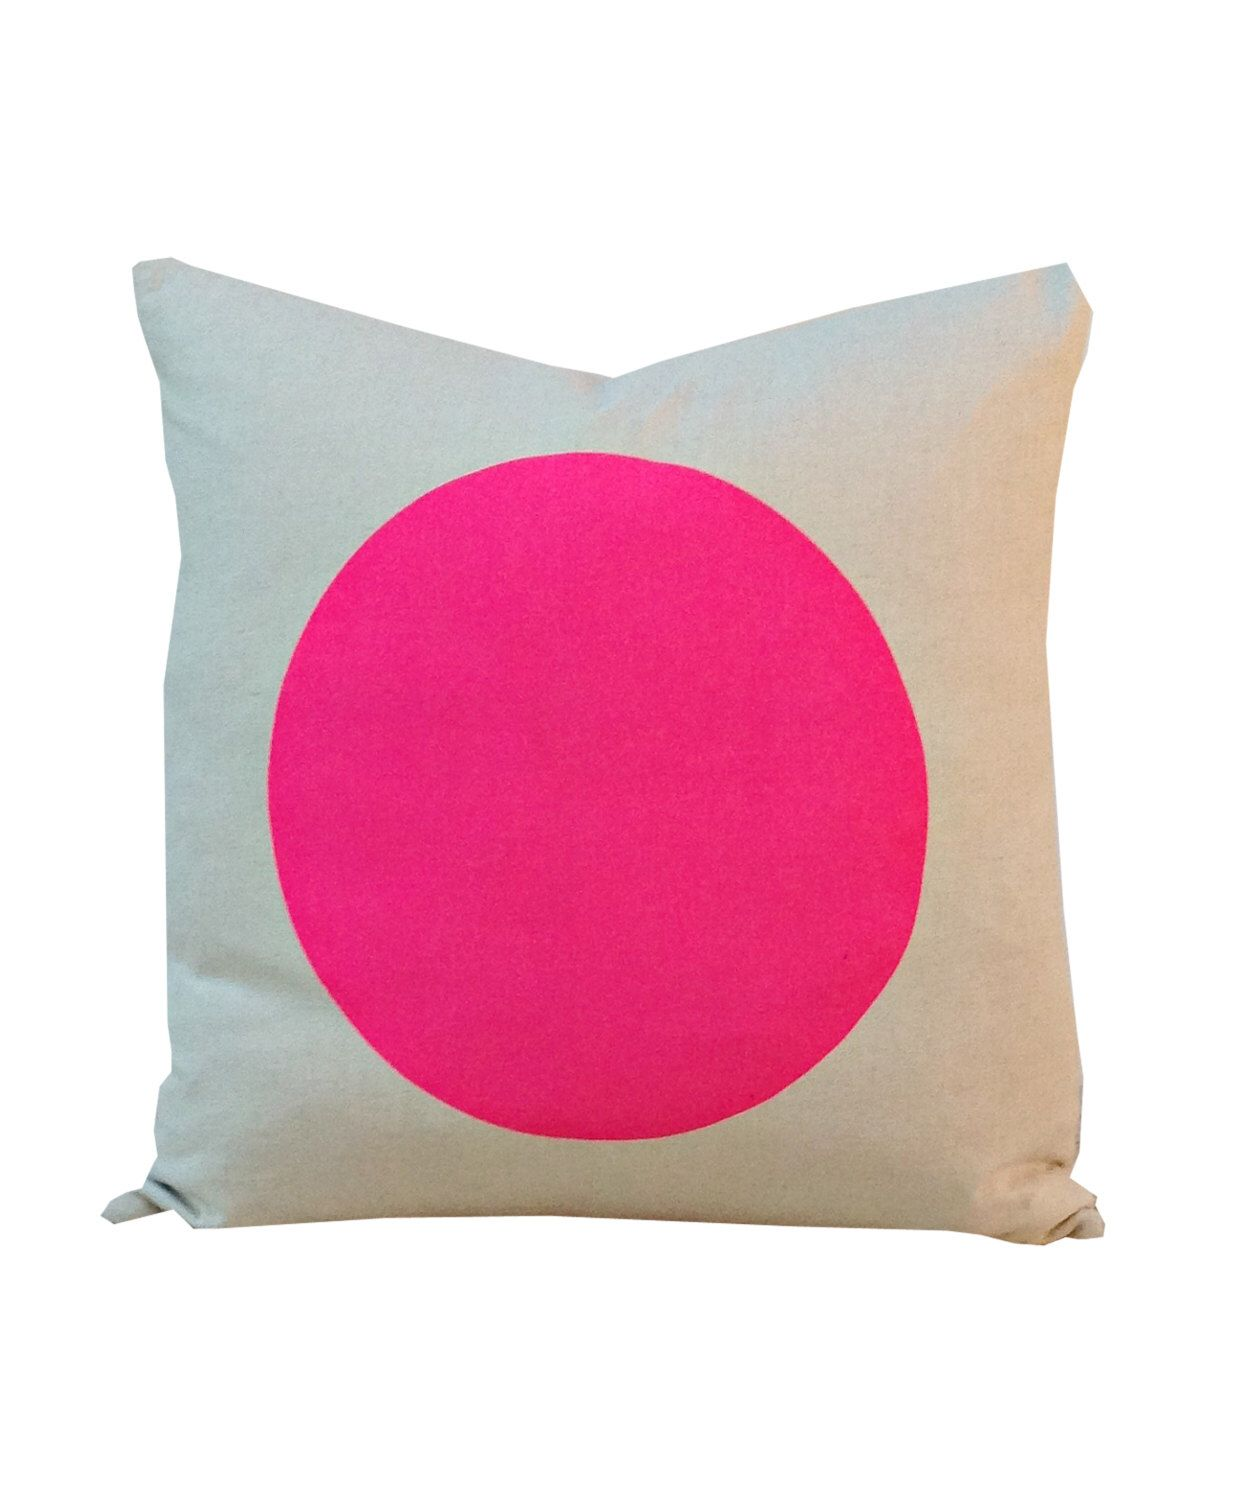 cd0fe51bd9 Cushion, Cushion Cover, Pillow Cover, Throw Pillow - Neon Pink Large Circle  by